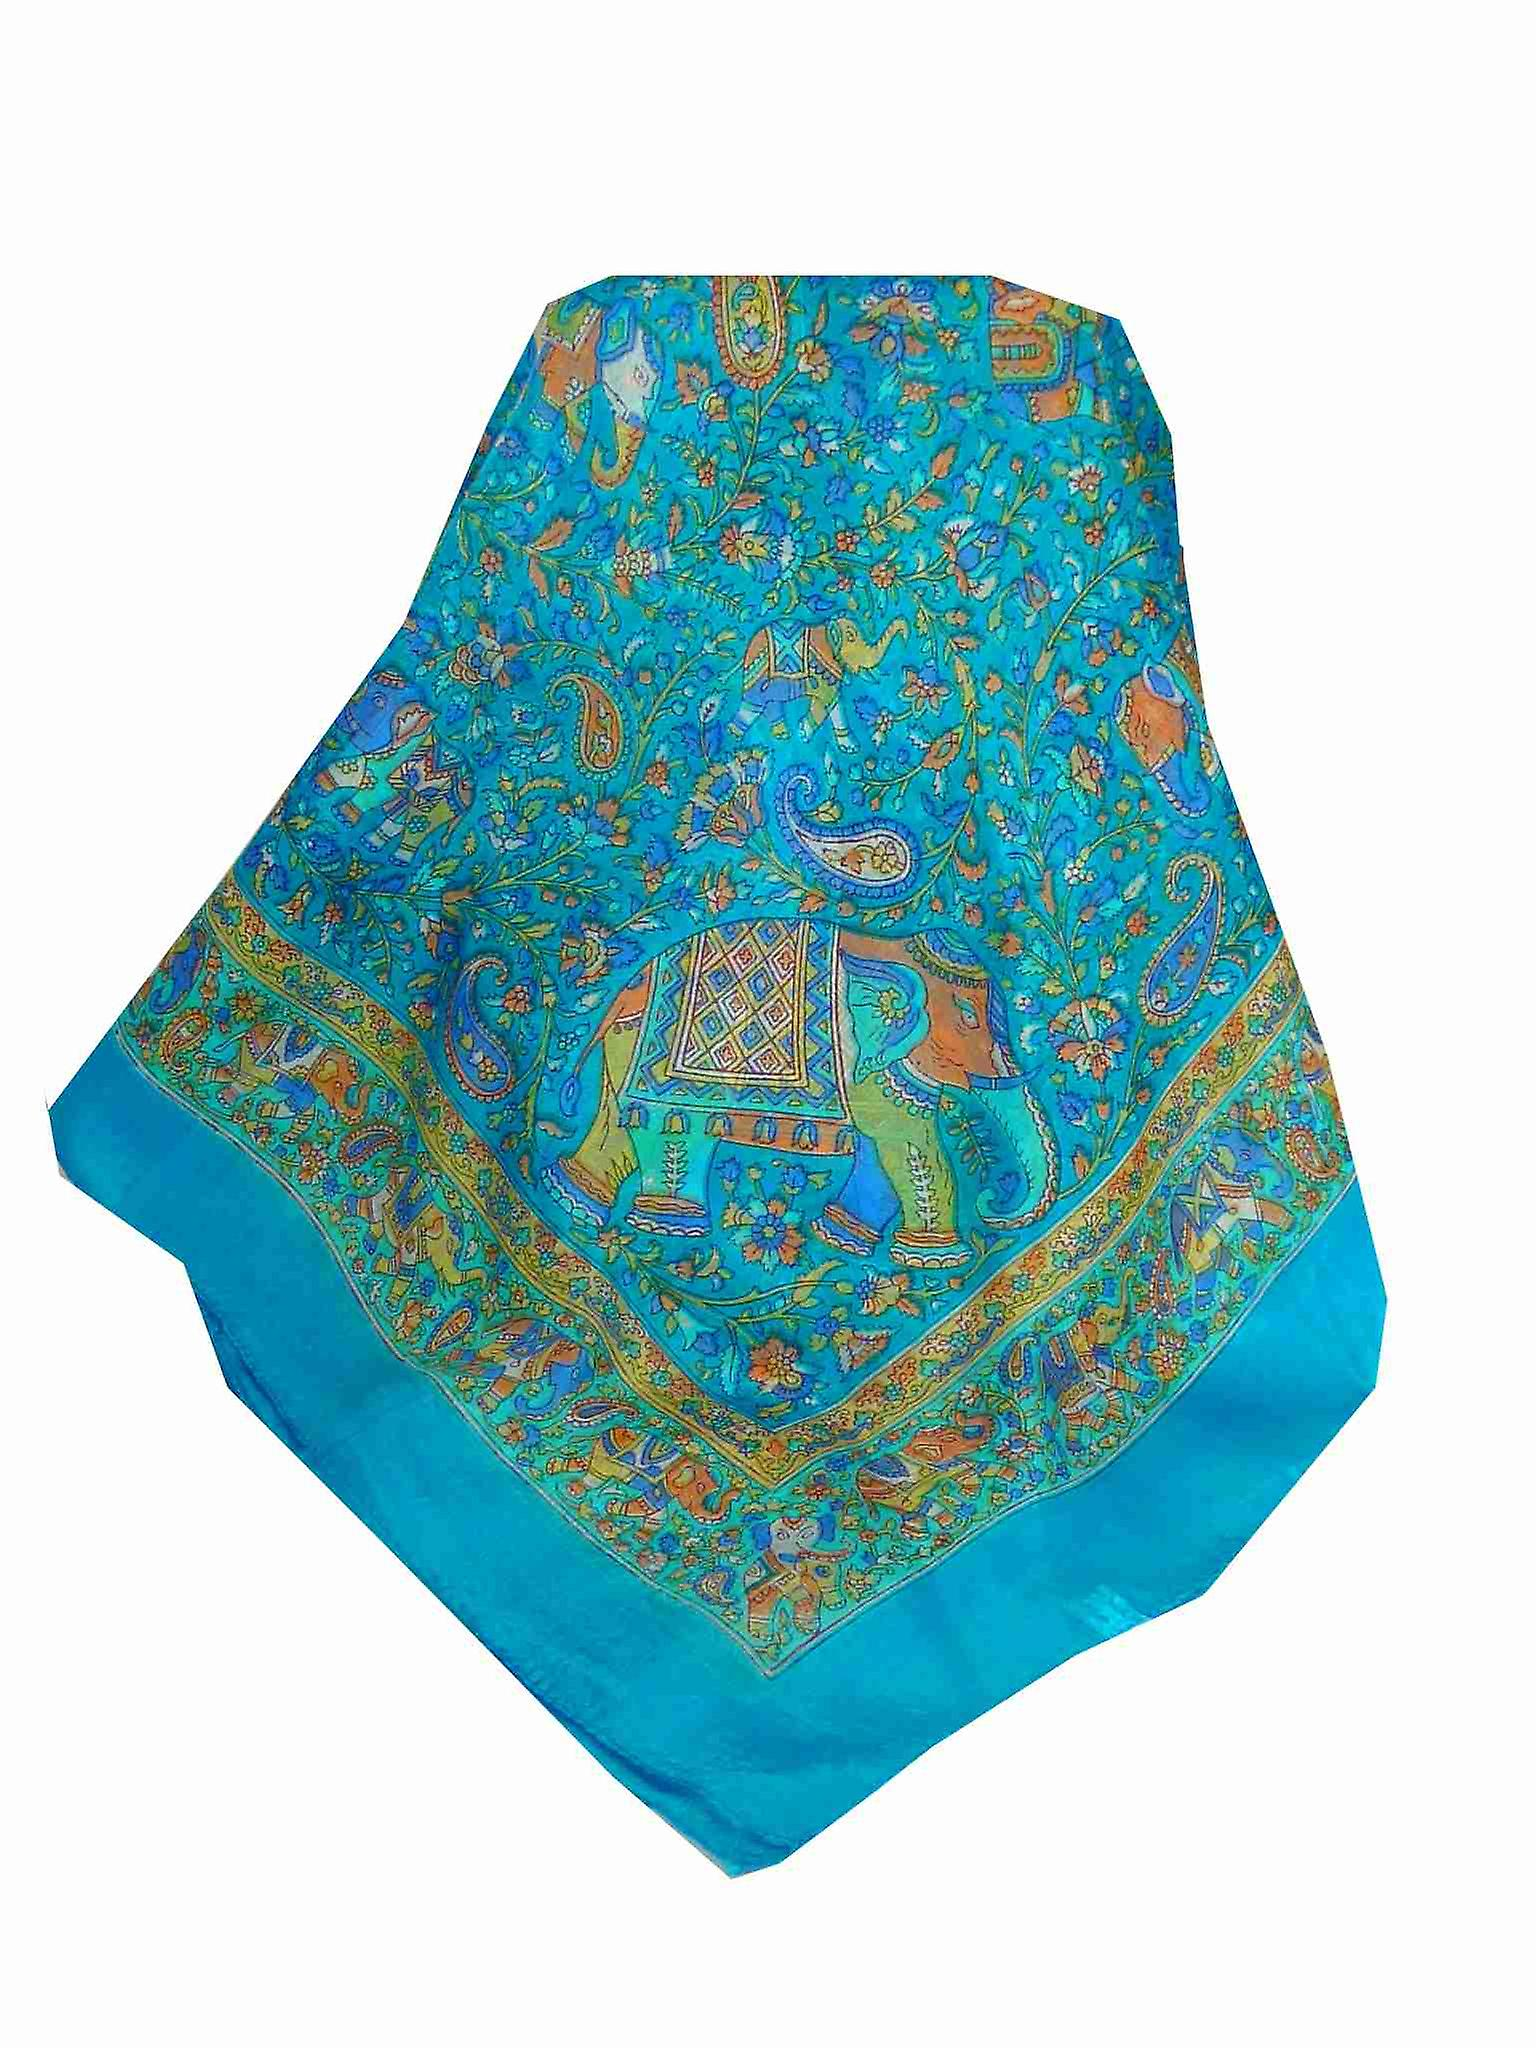 Mulberry Silk Traditional Square Scarf Kuhu Light Blue by Pashmina & Silk